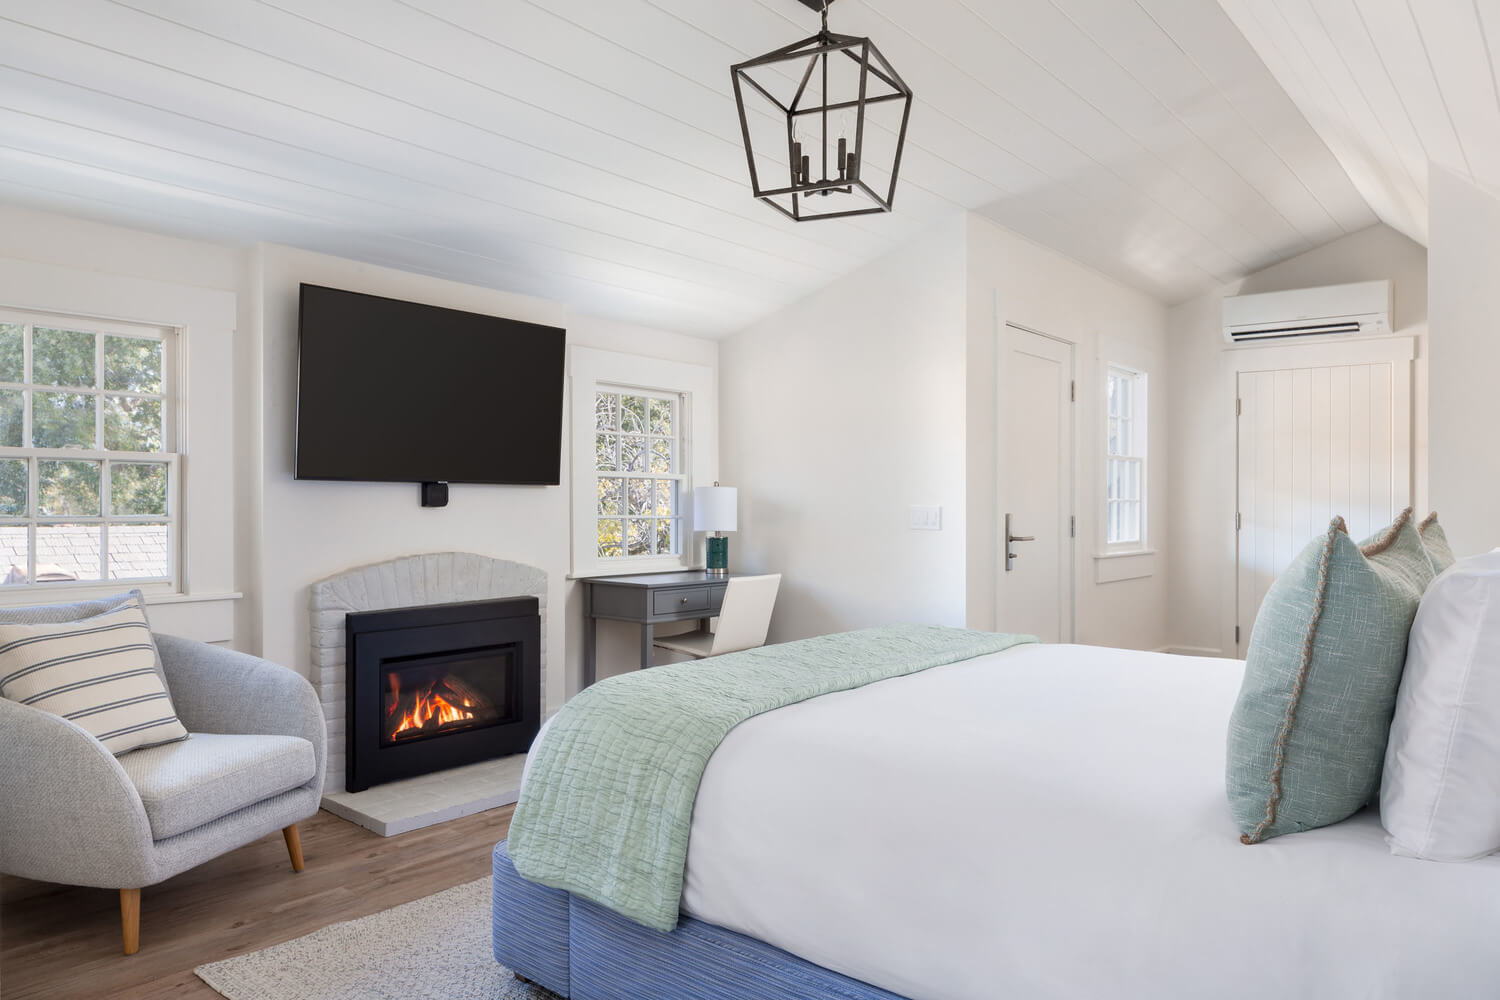 suite with a fireplace, tv and chair